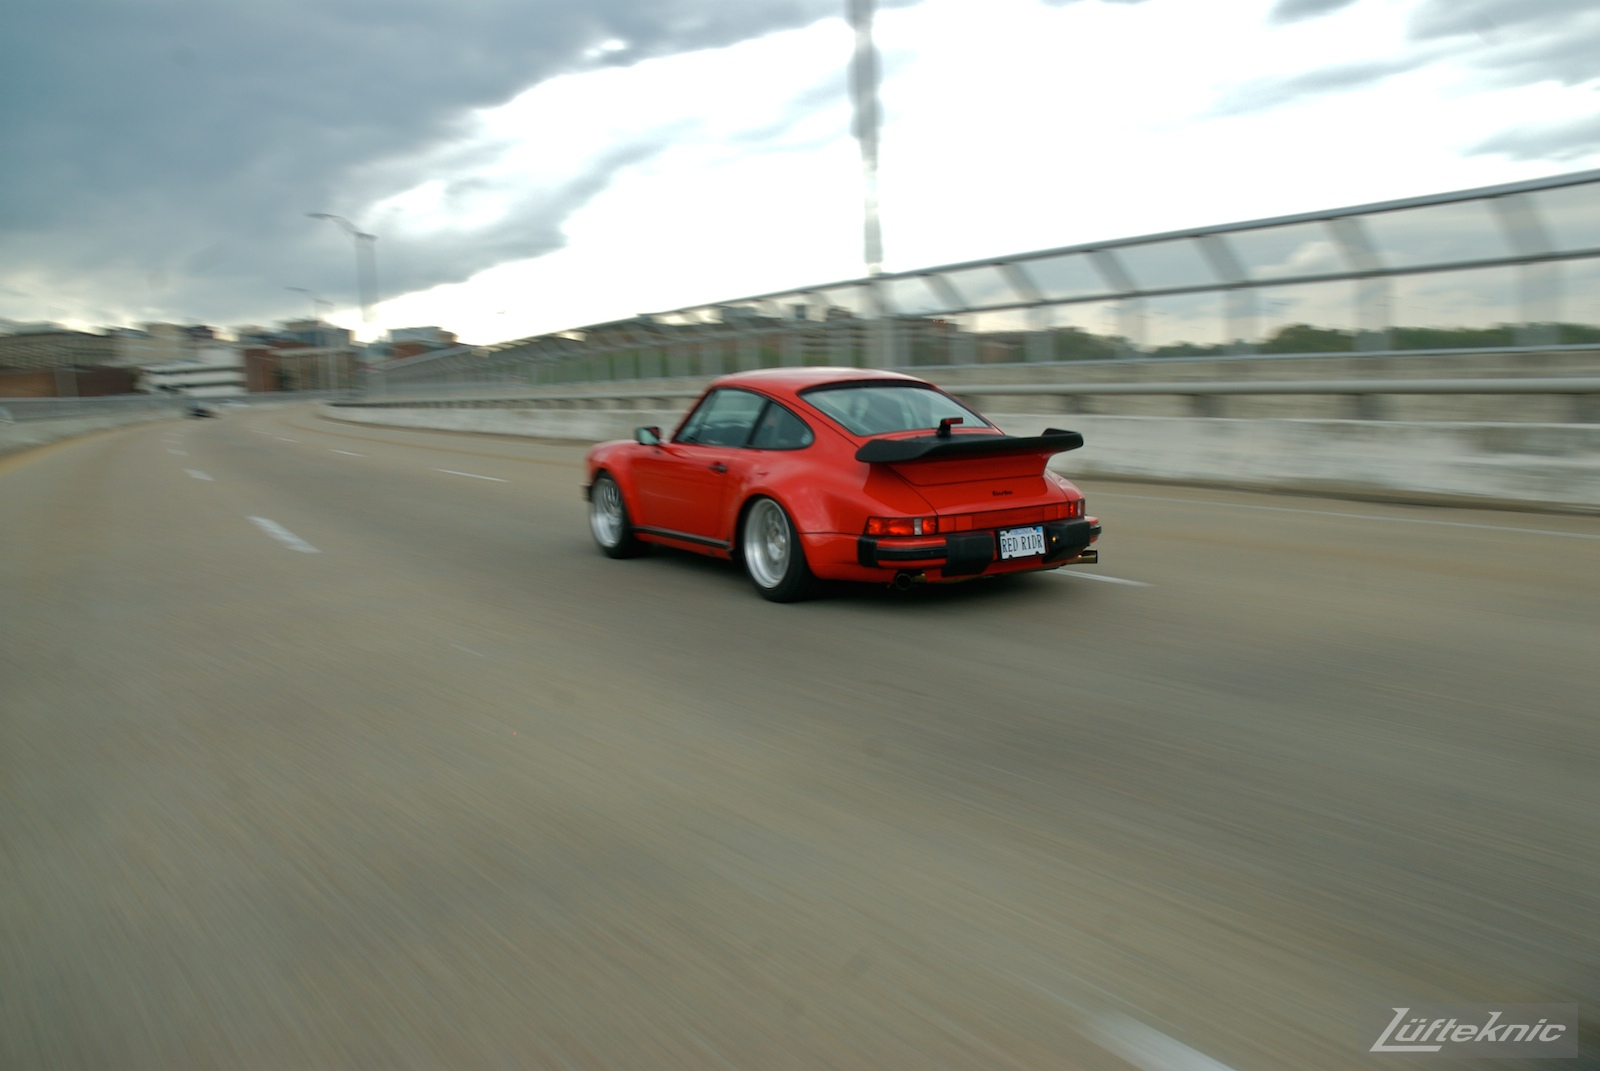 Red Porsche 930 Turbo.